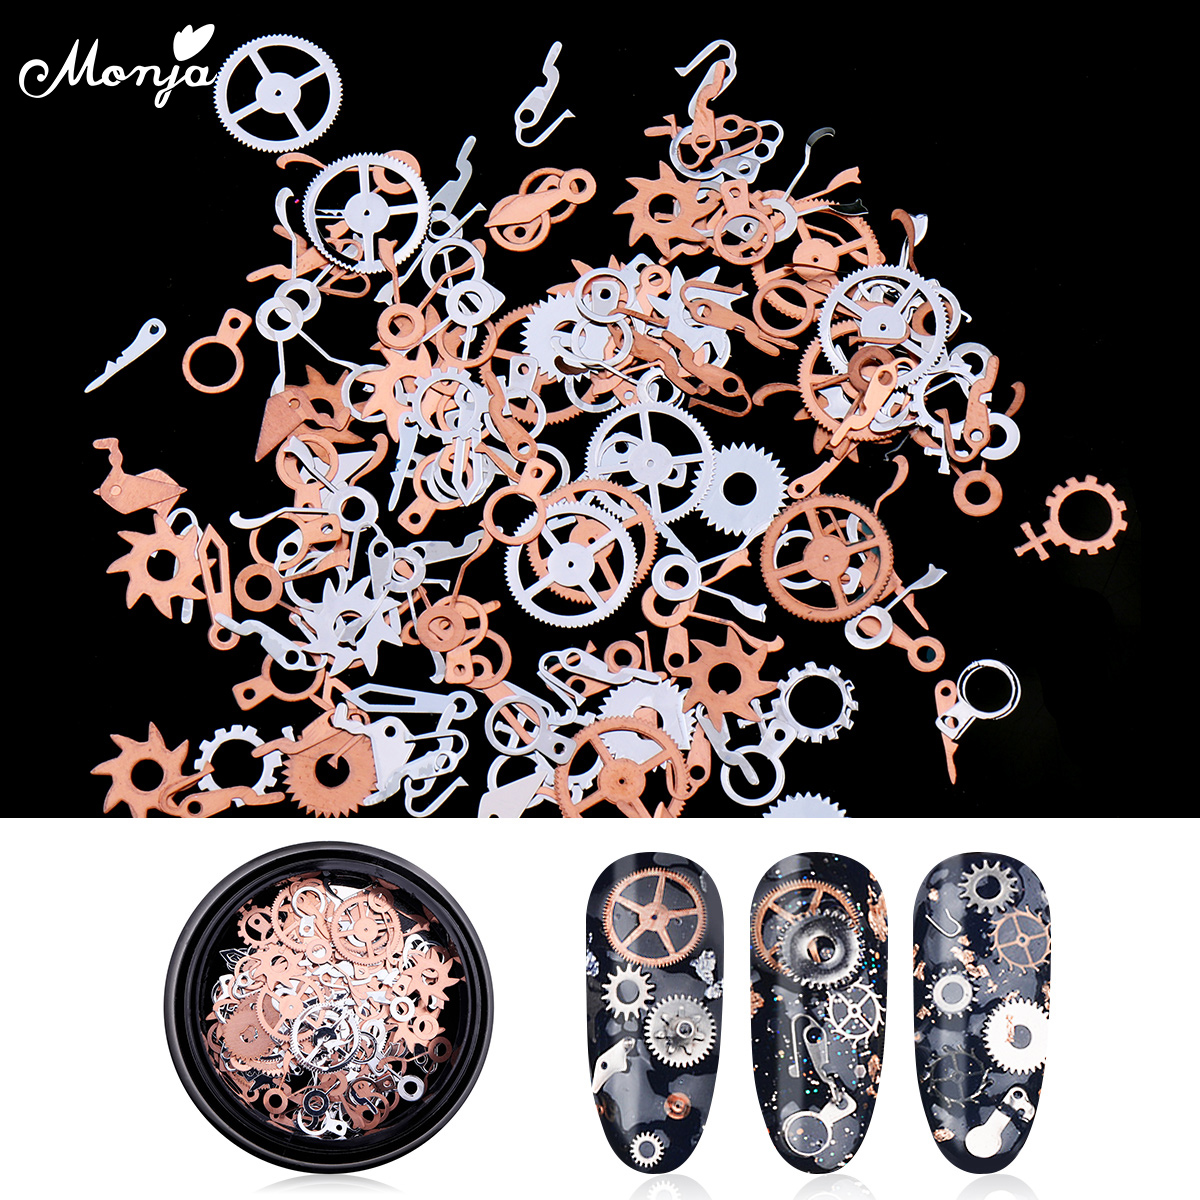 Top 9 Most Popular Wheel Metal Nail Art Charms Brands And